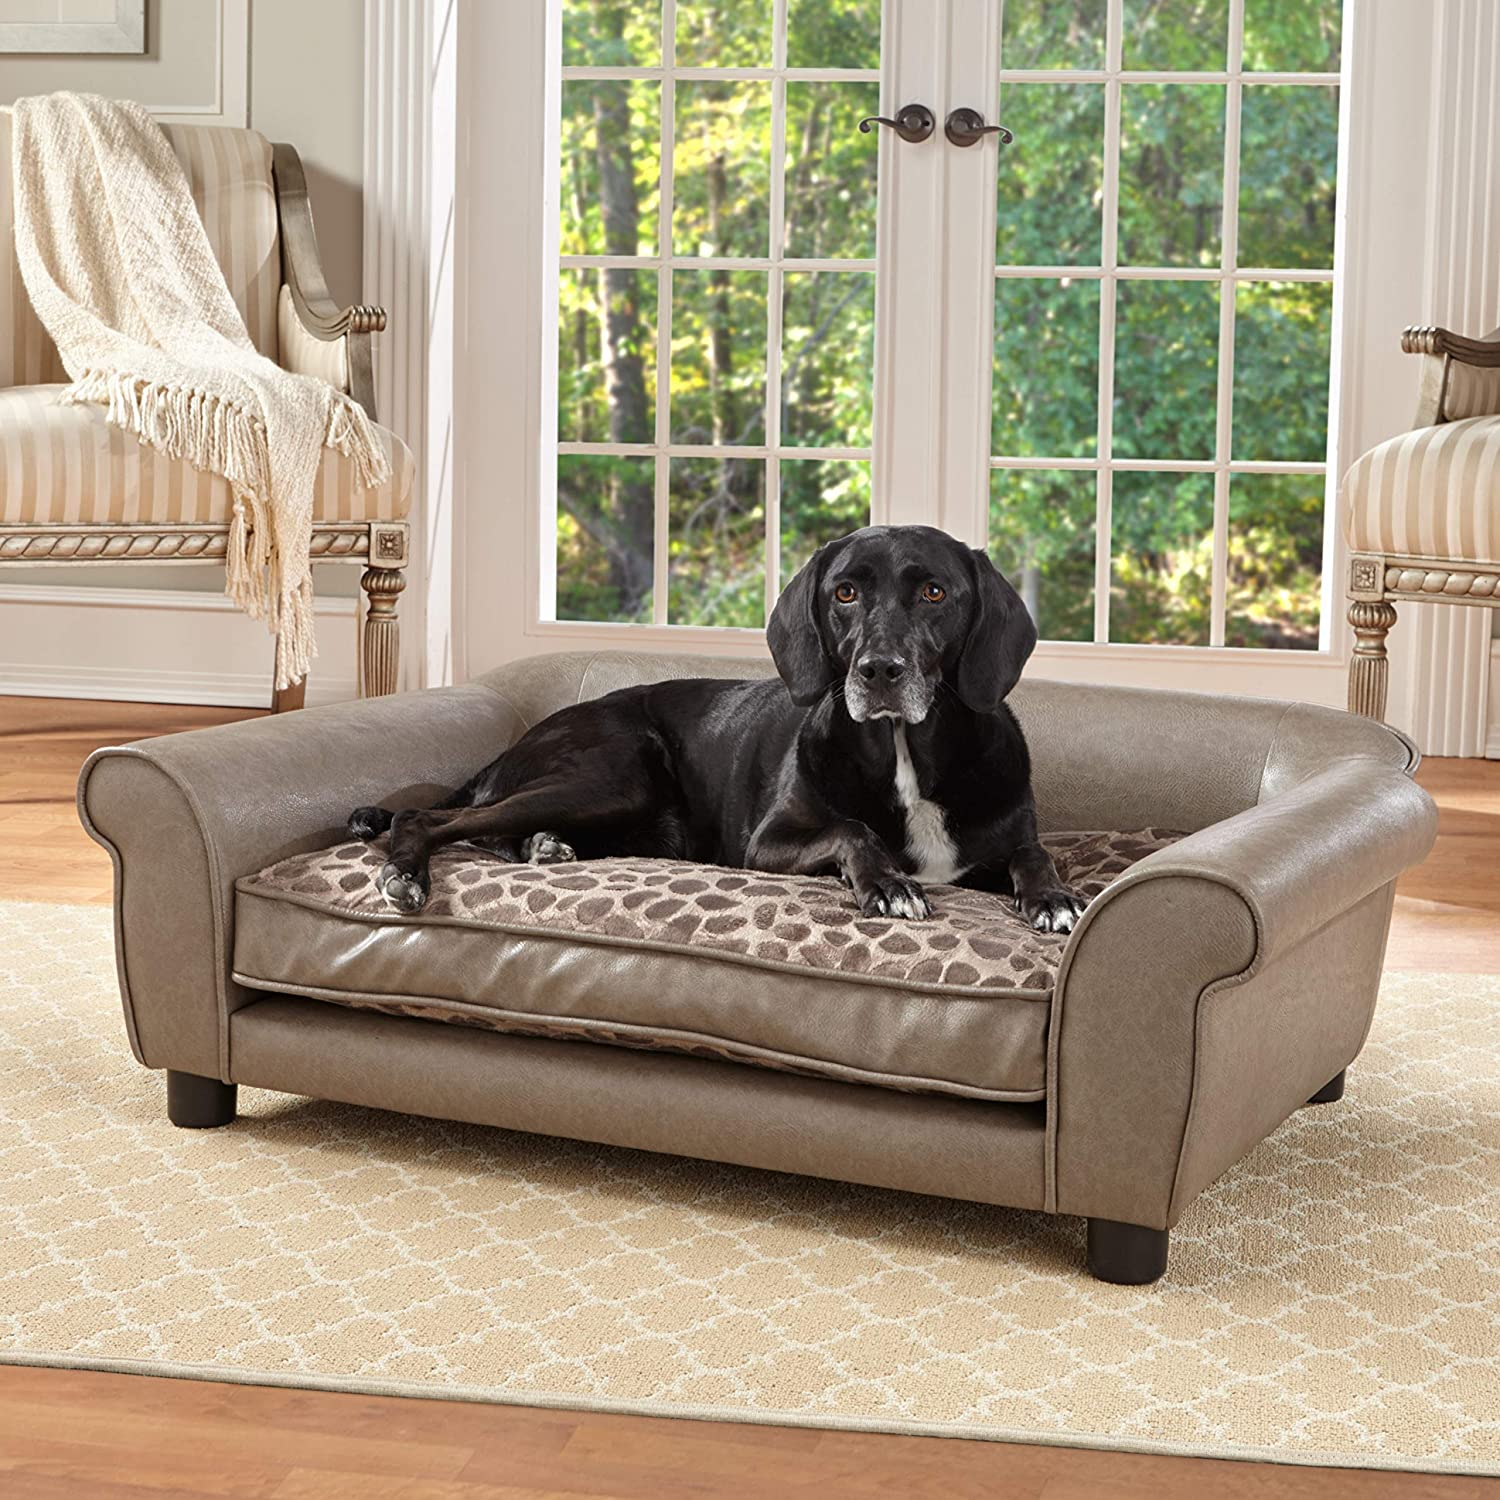 Enchanted Home Pet Rockwell Max 57% OFF Sofa Max 51% OFF